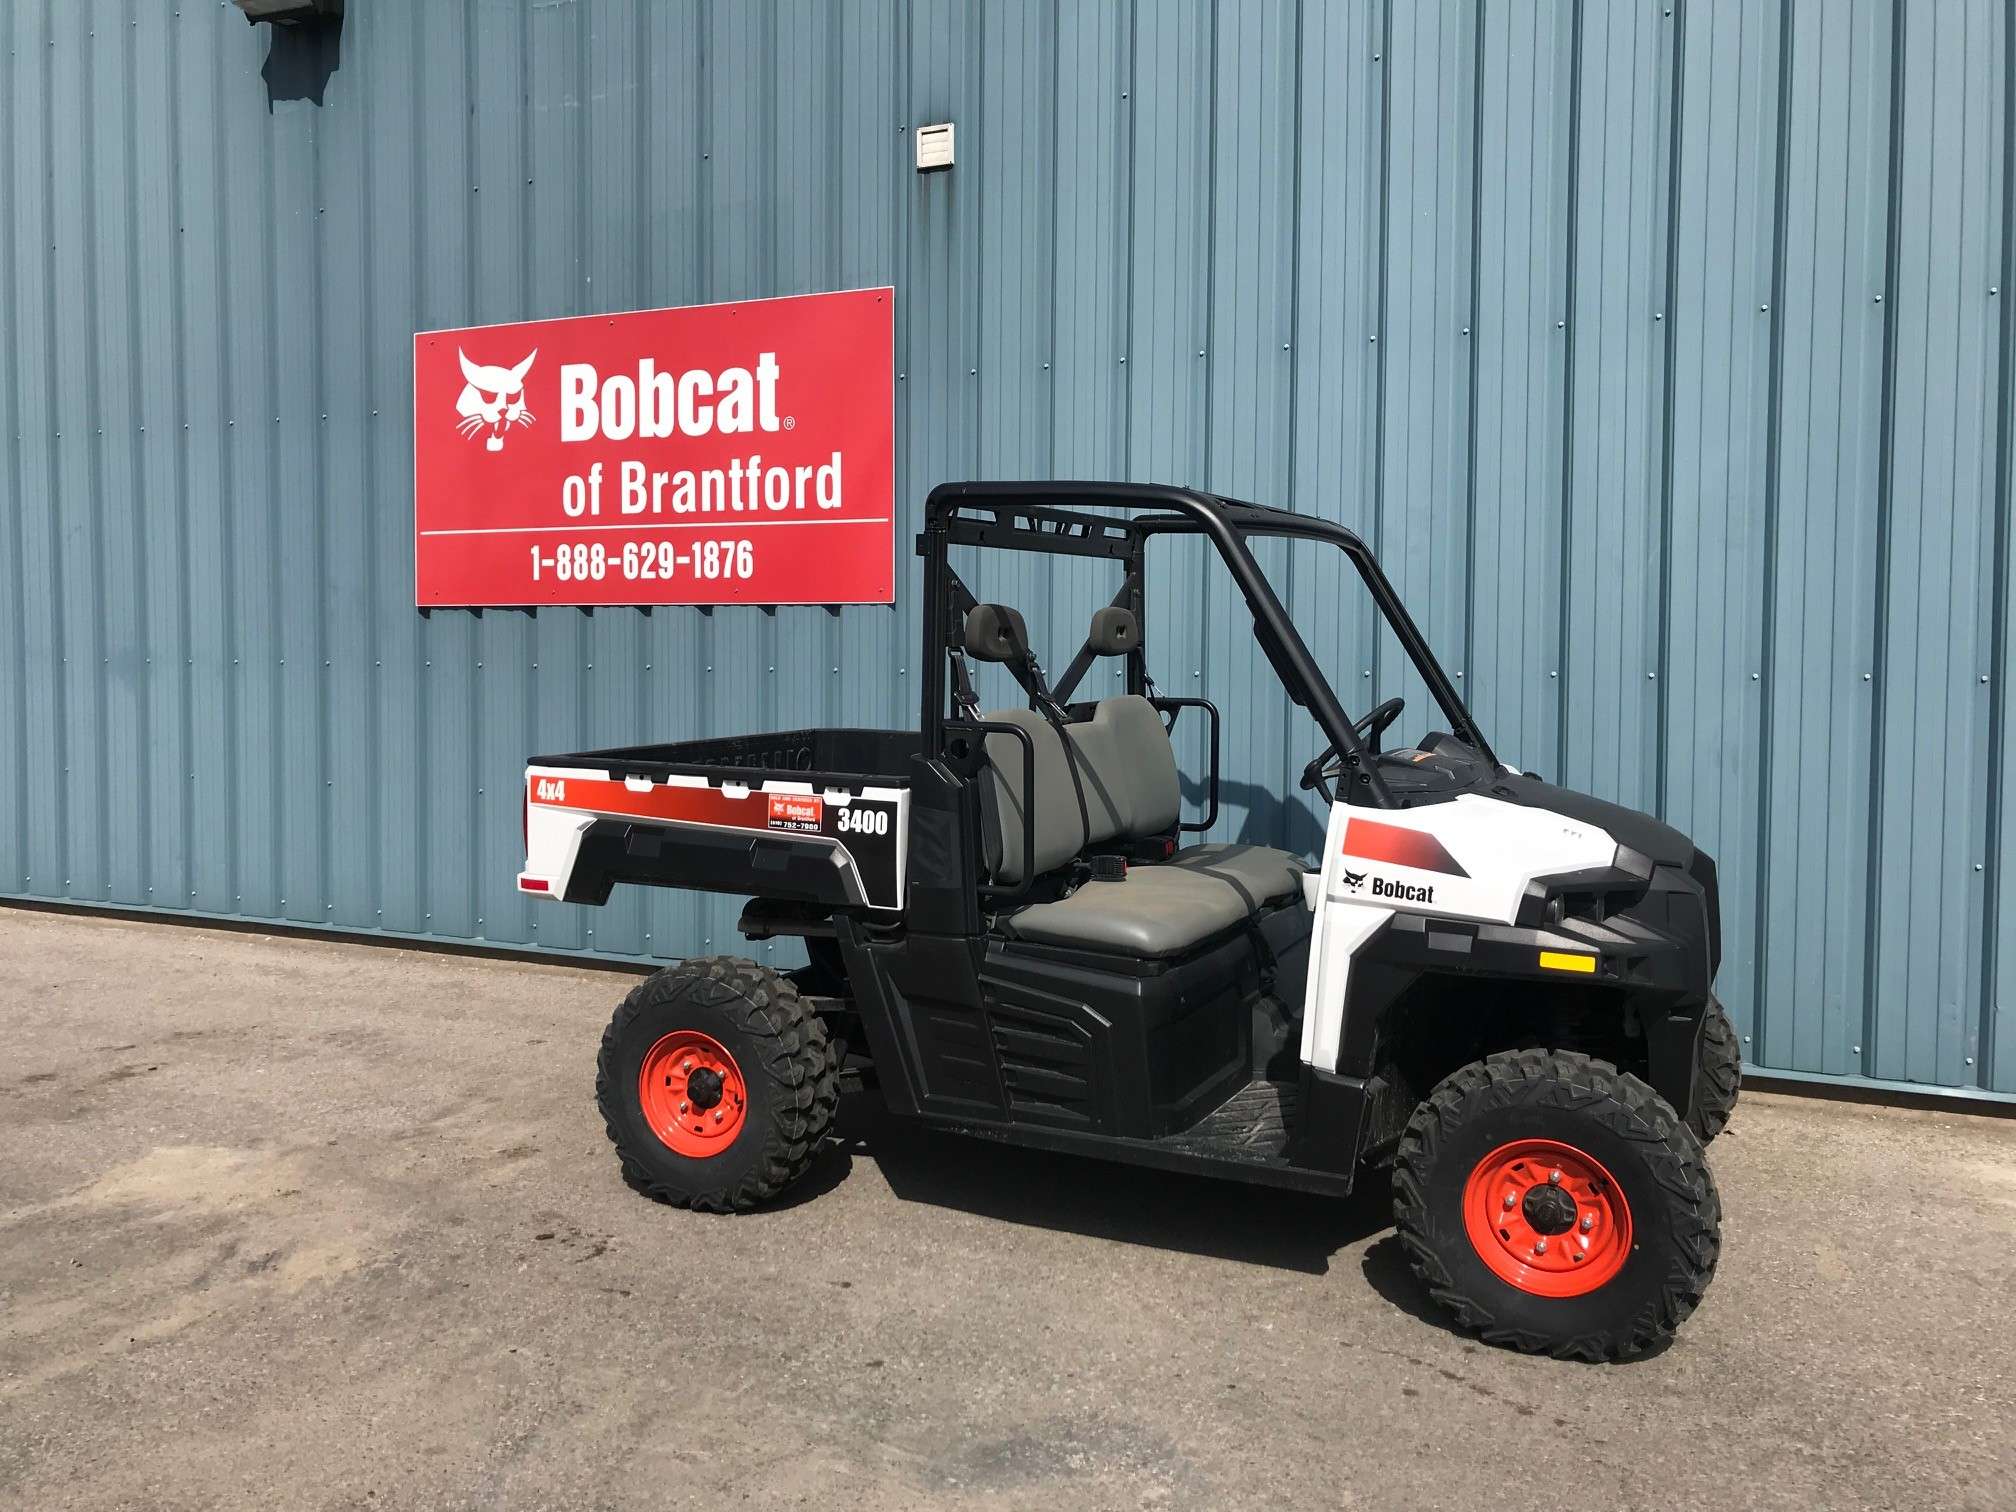 Bobcat Of Brantford >> Used 2018 Bobcat 3400 In Brantford On